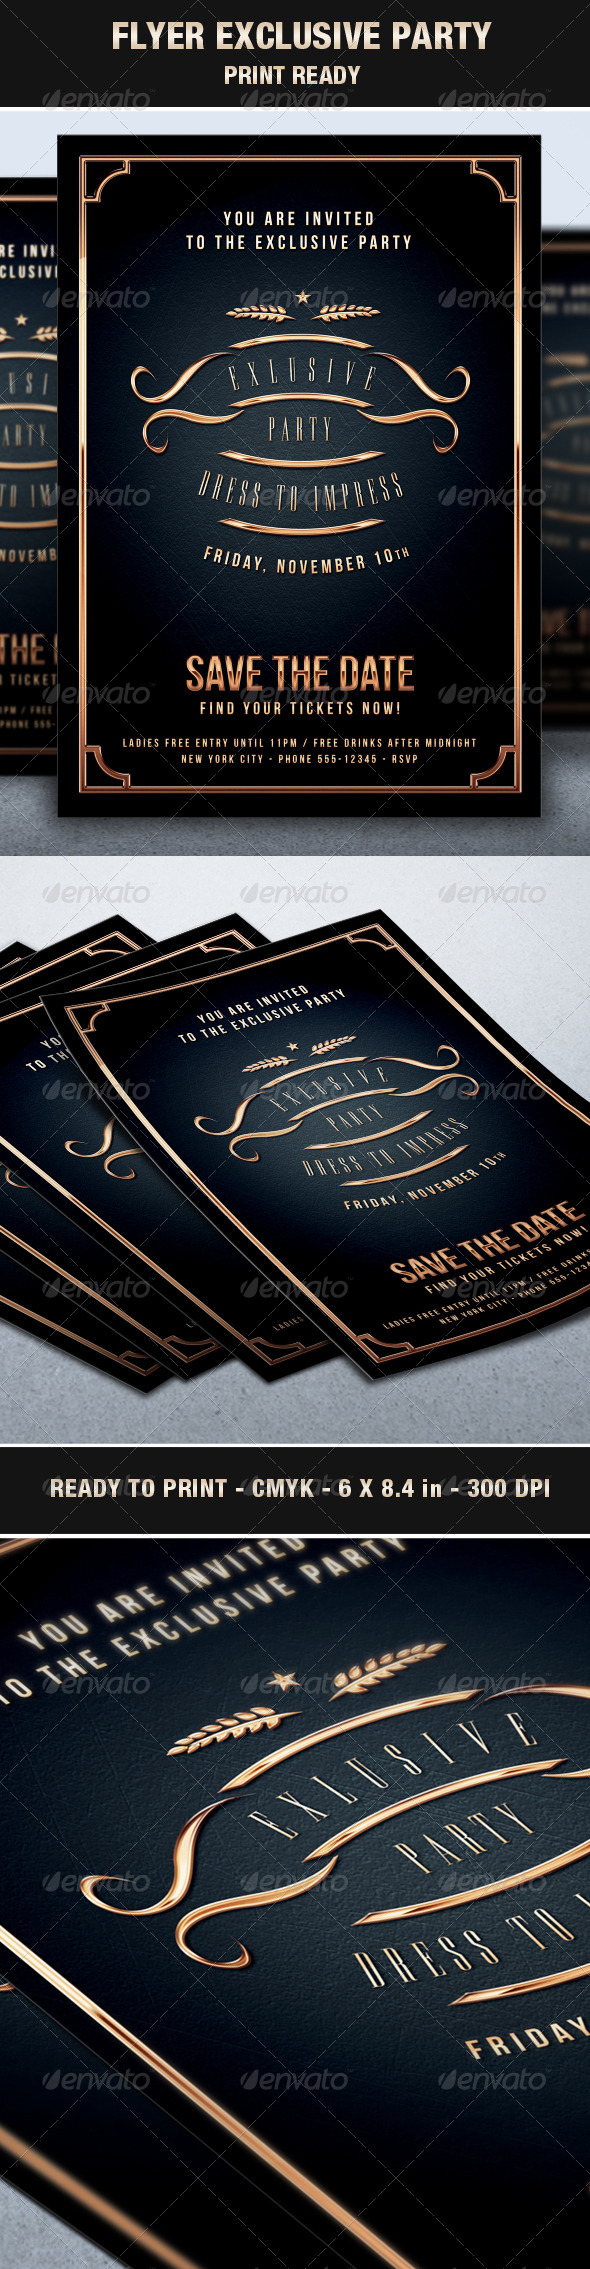 GraphicRiver Flyer Exclusive & Elegant Party Vip Style 6860529